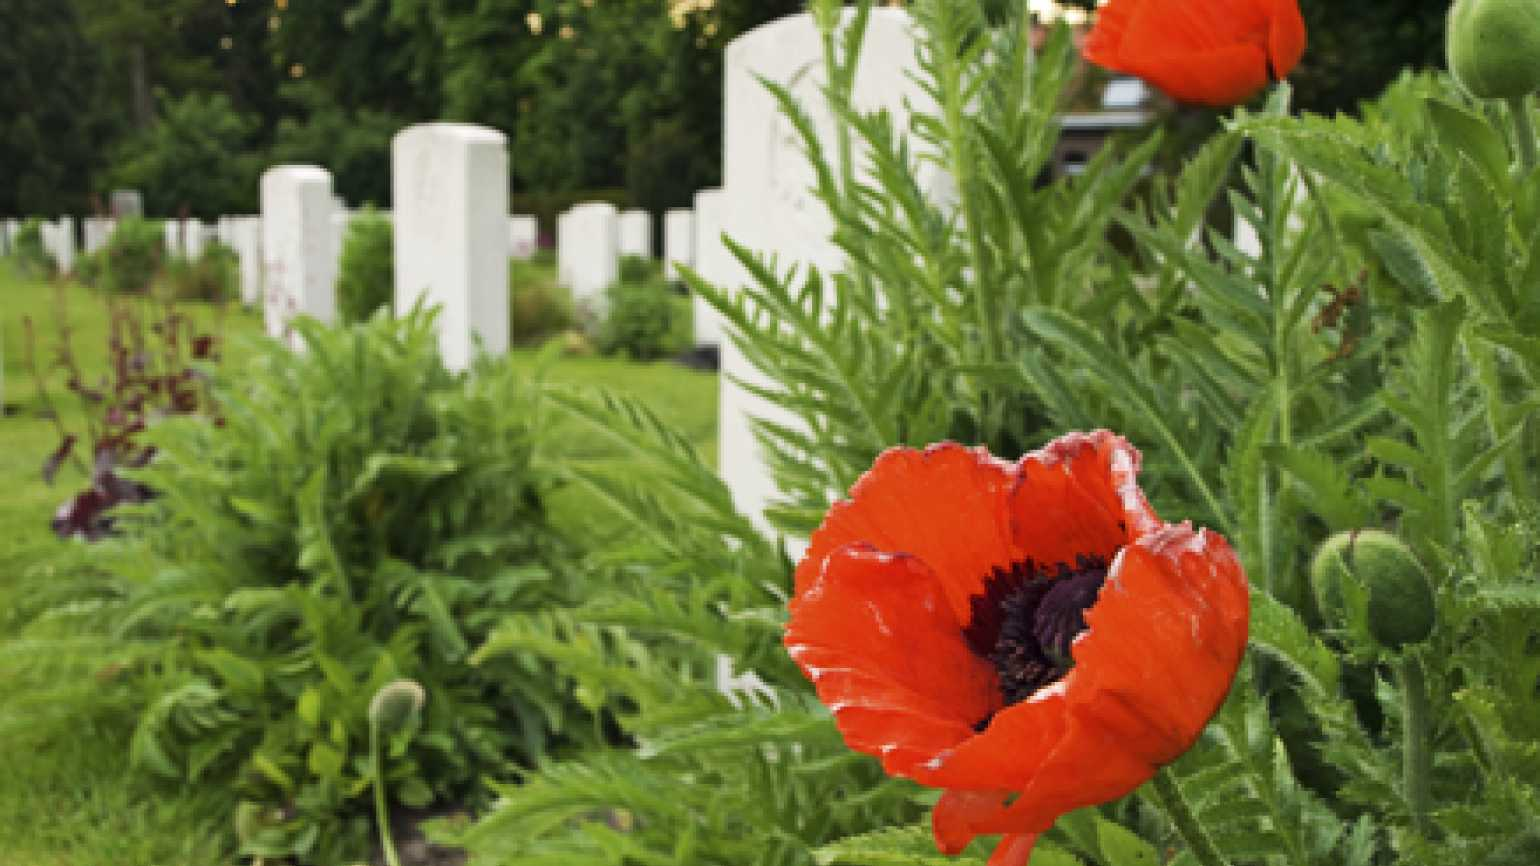 Photograph of gravestones and poppies